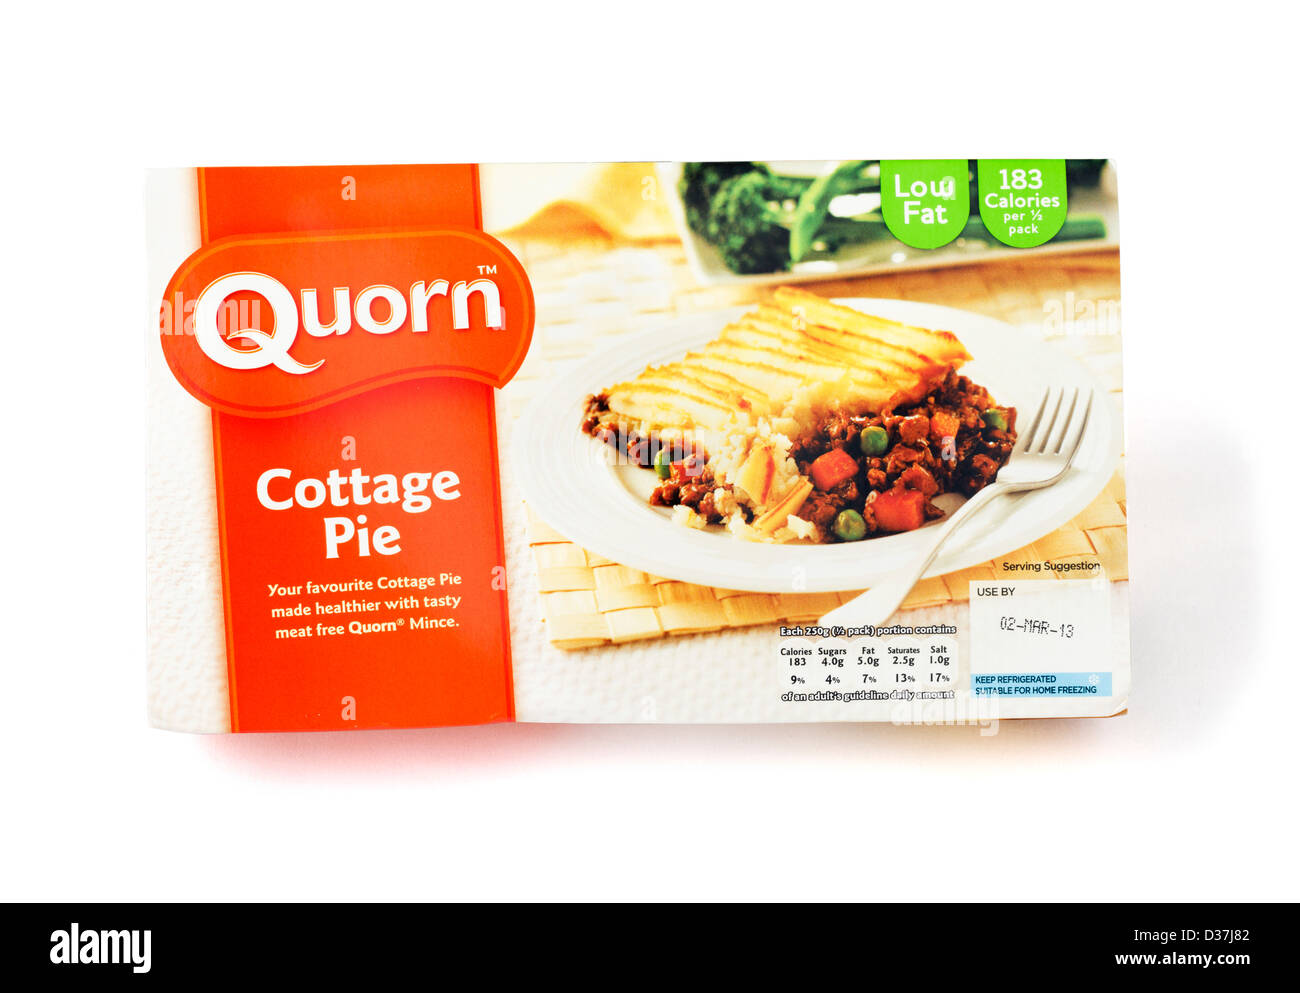 Quorn Cottage Pie ready meal, UK - Stock Image